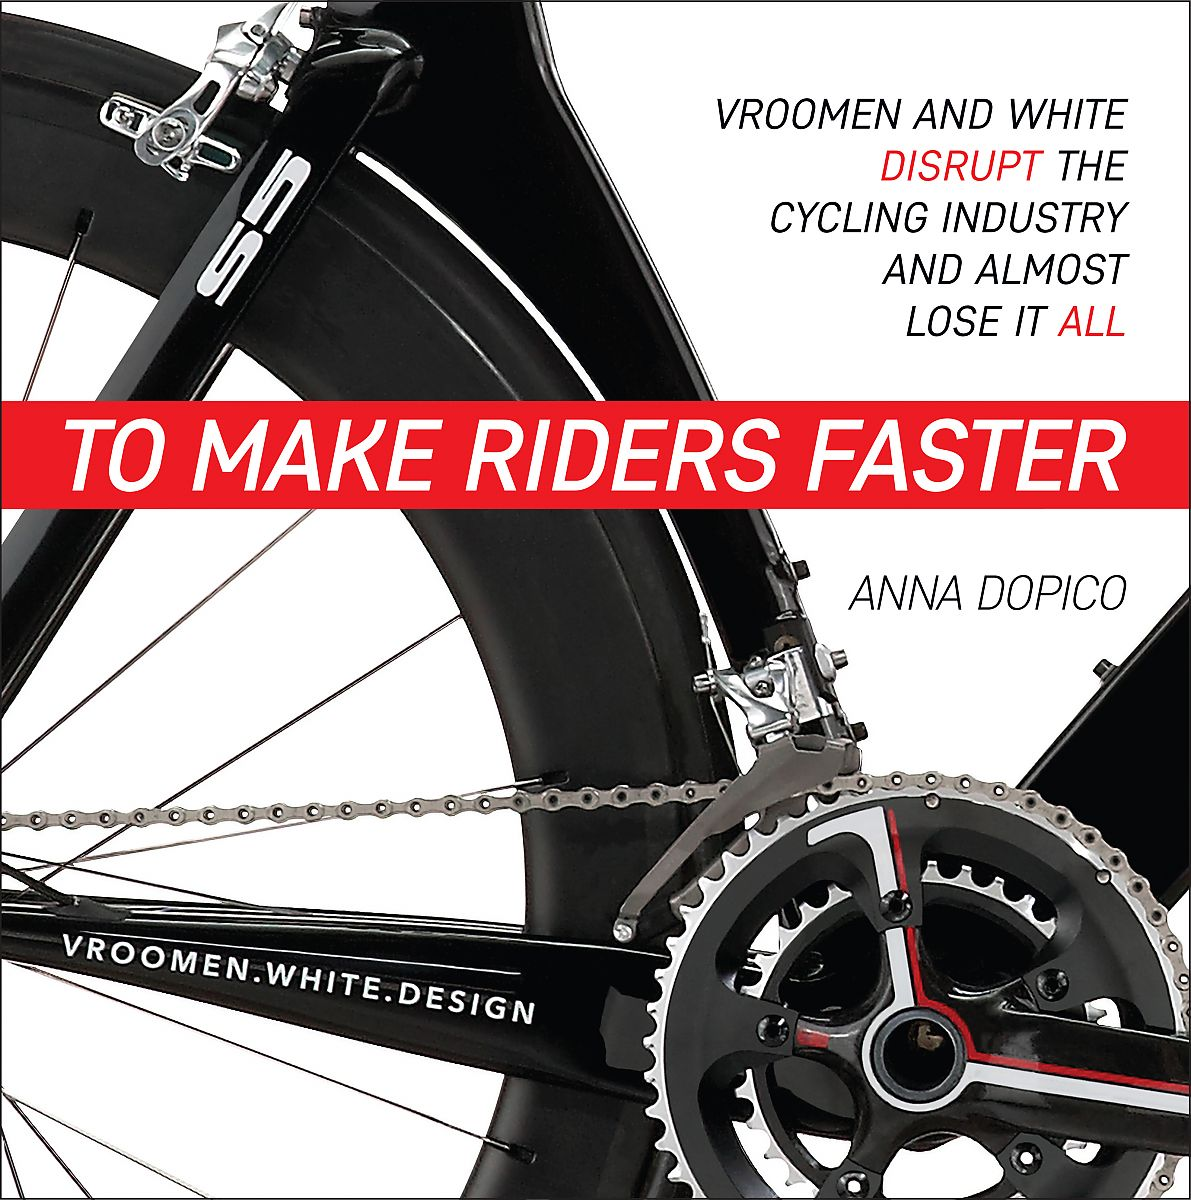 New book examines how Cervélo disrupted the industry | Bicycle